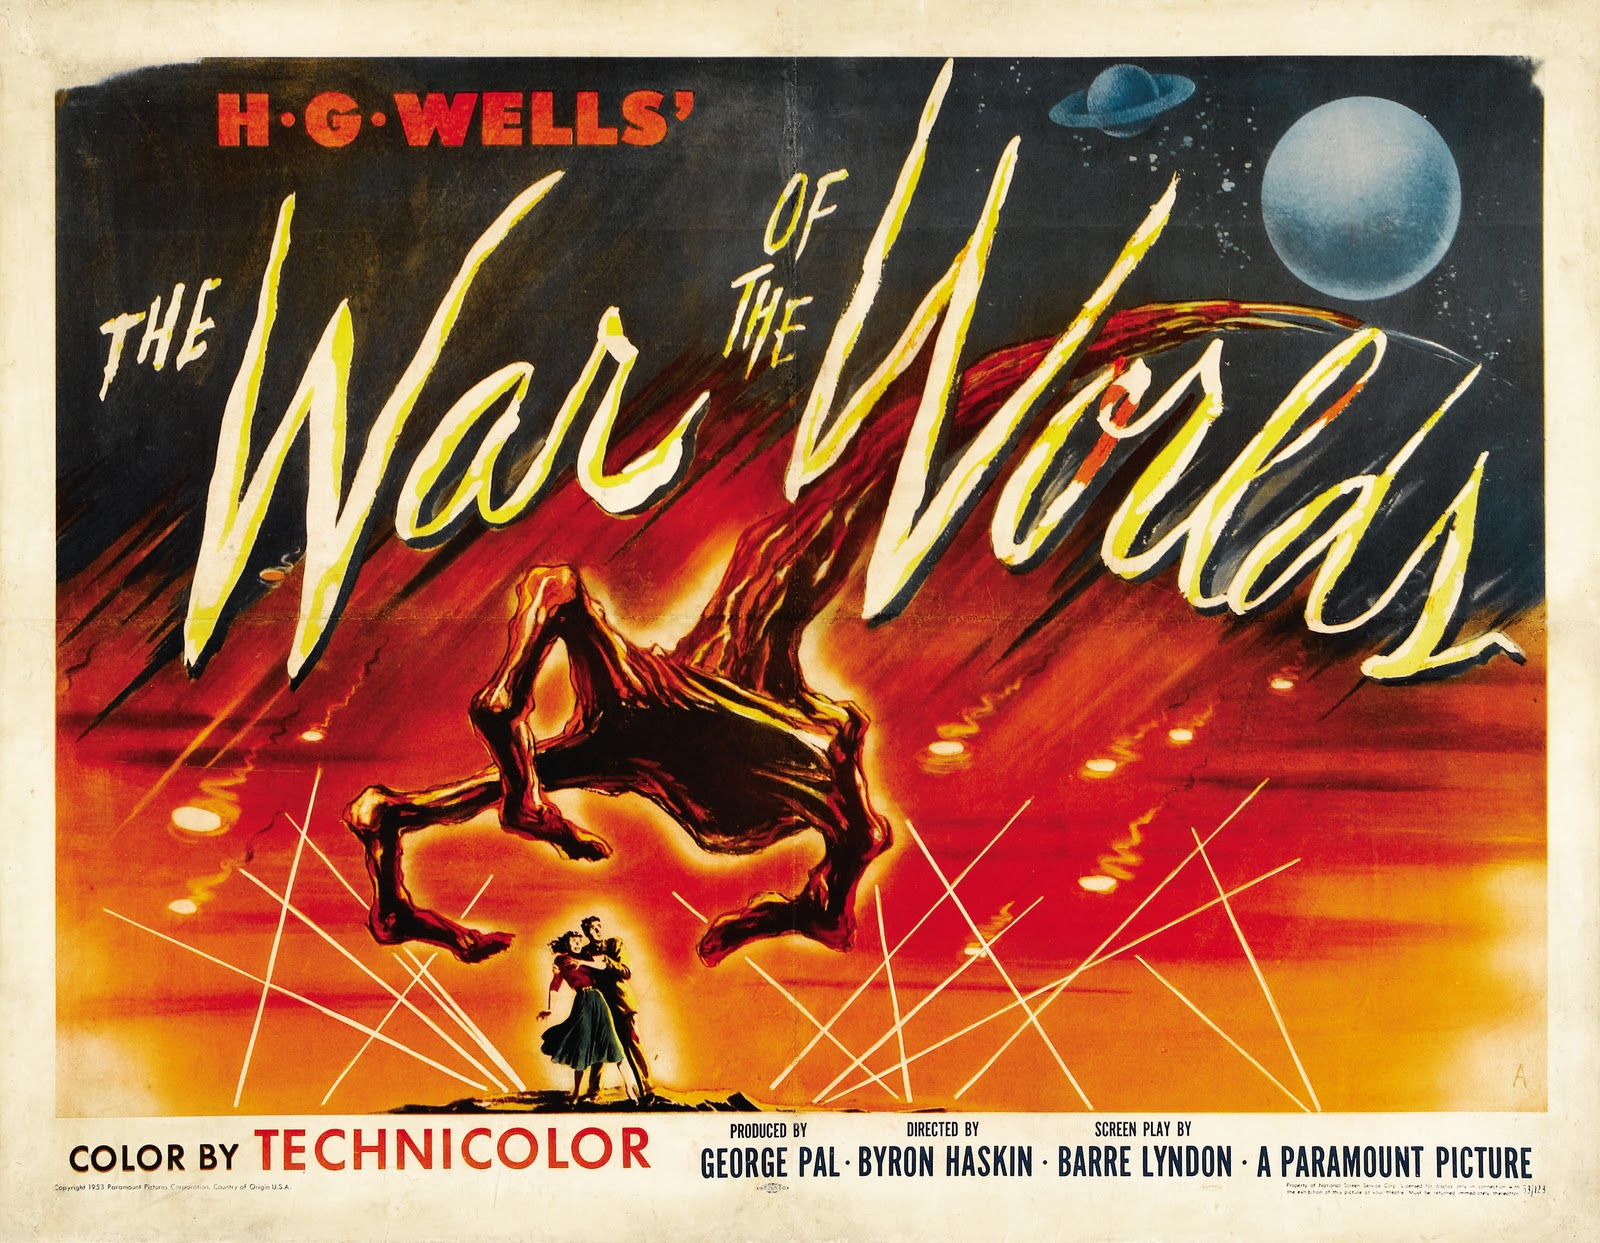 The War of the Worlds, The Chilling Cold War Classic